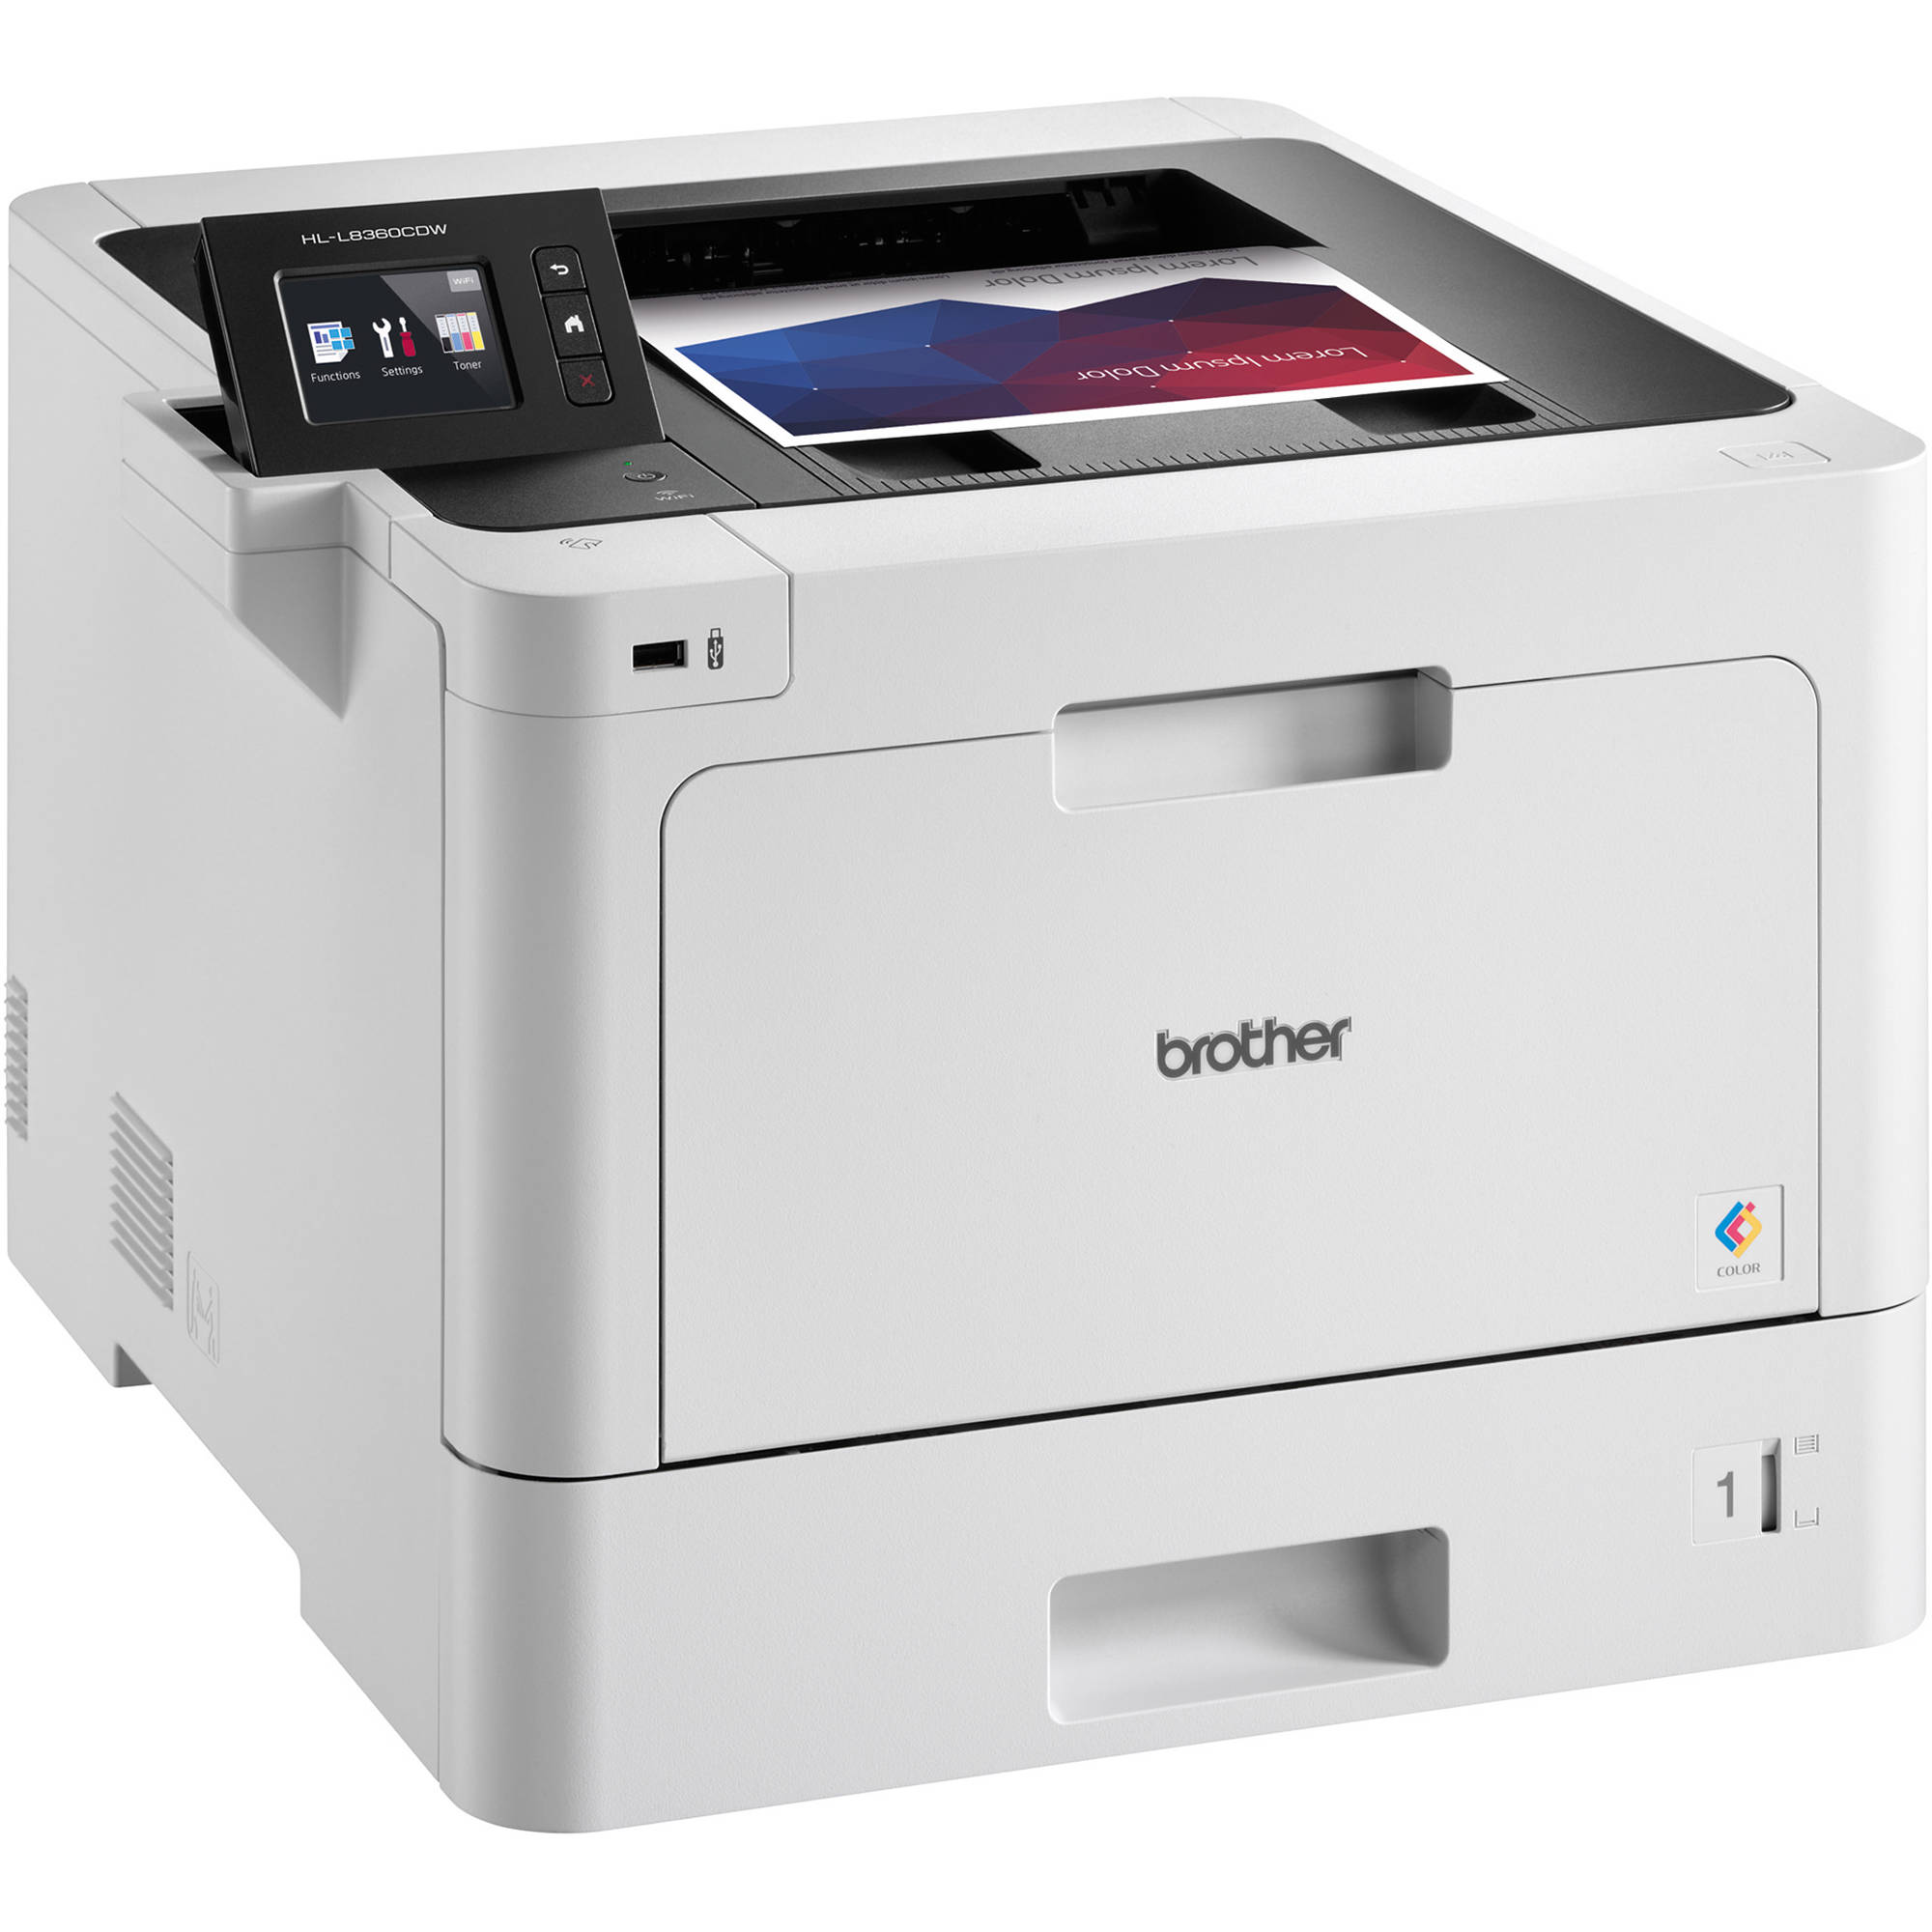 Brother HL-L8360CDW Color Laser Printer